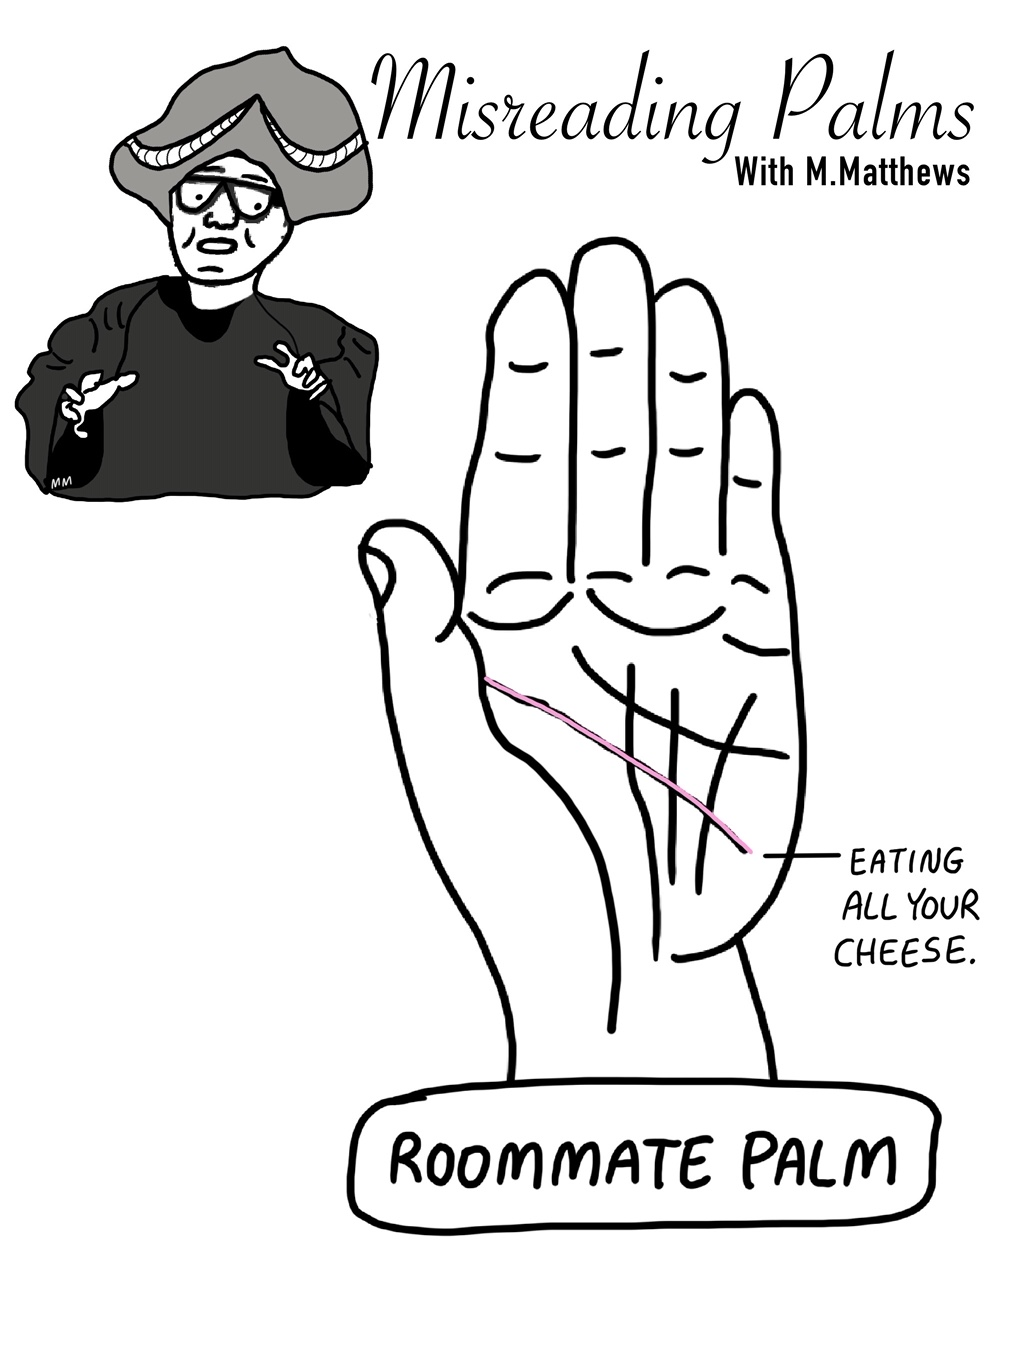 Misreading Palms